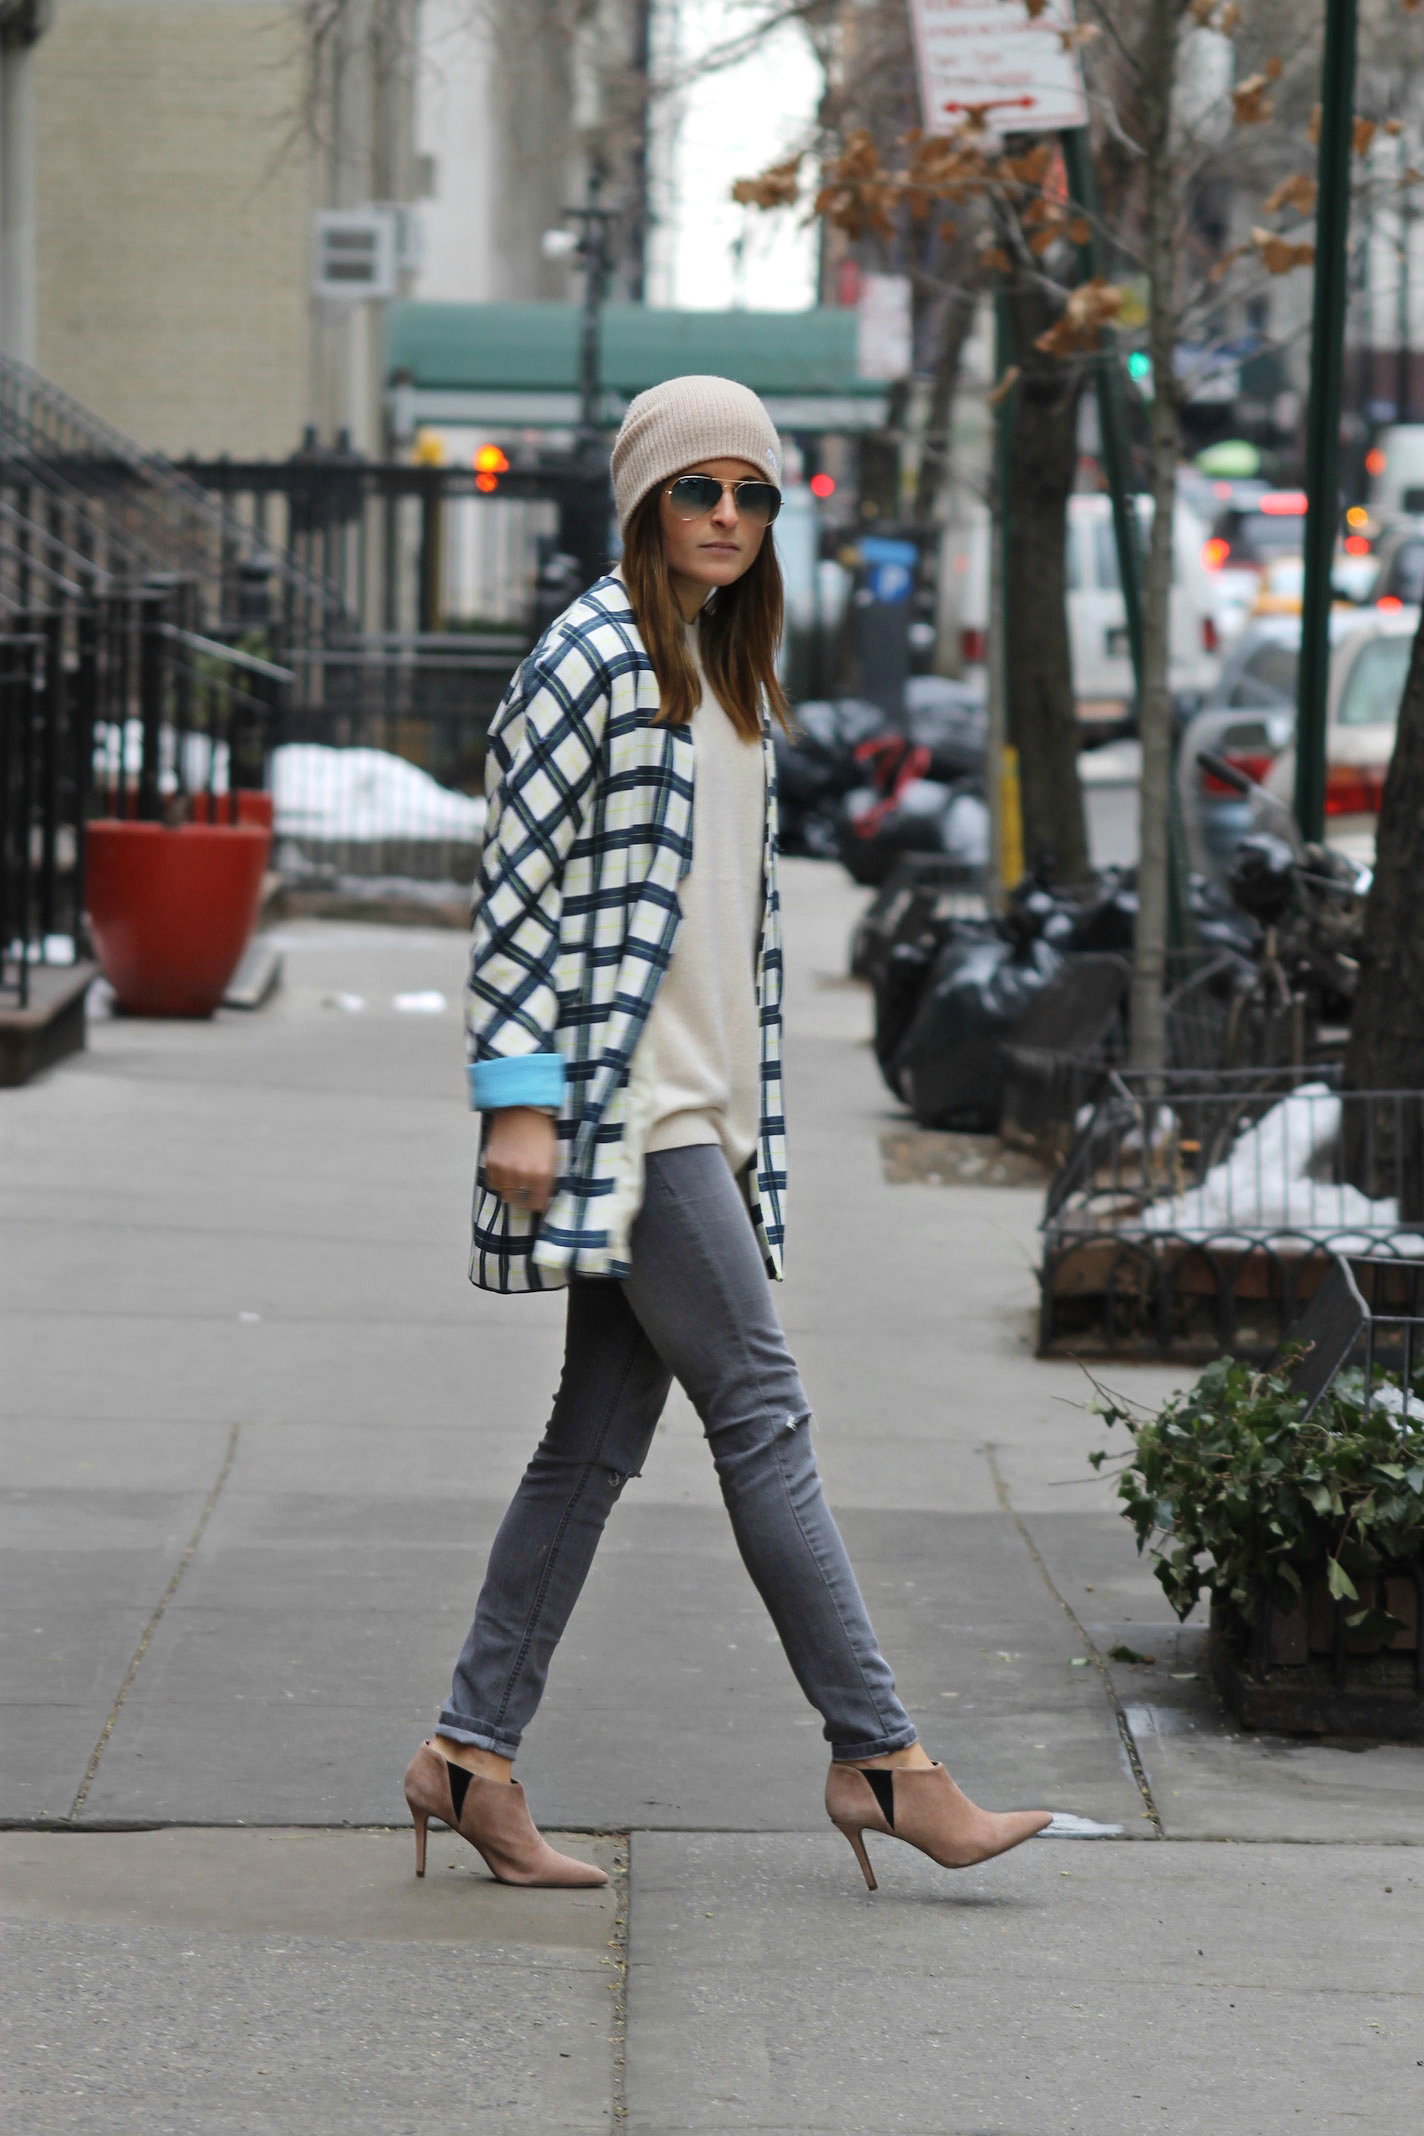 Street style tip of the day: Check yourself